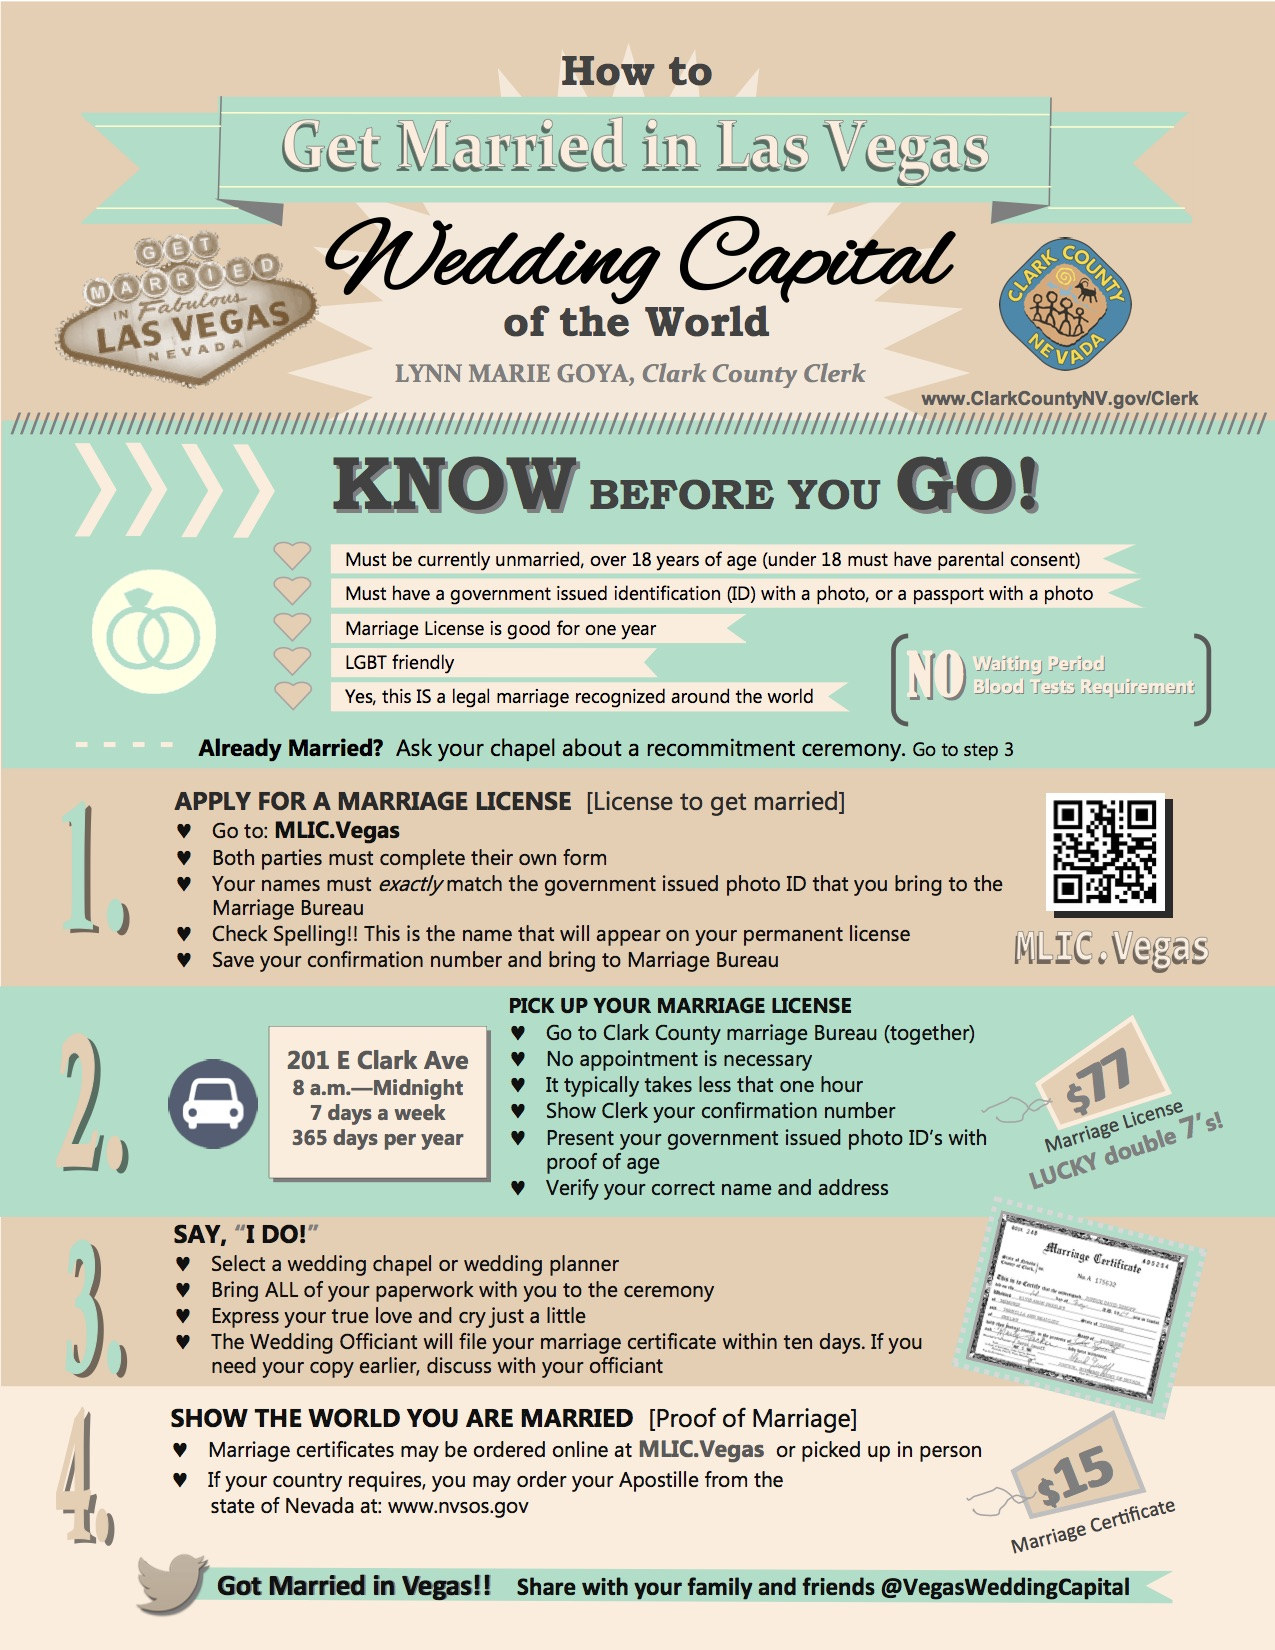 How To Get Married In Las Vegas The Wedding Capital Of The World